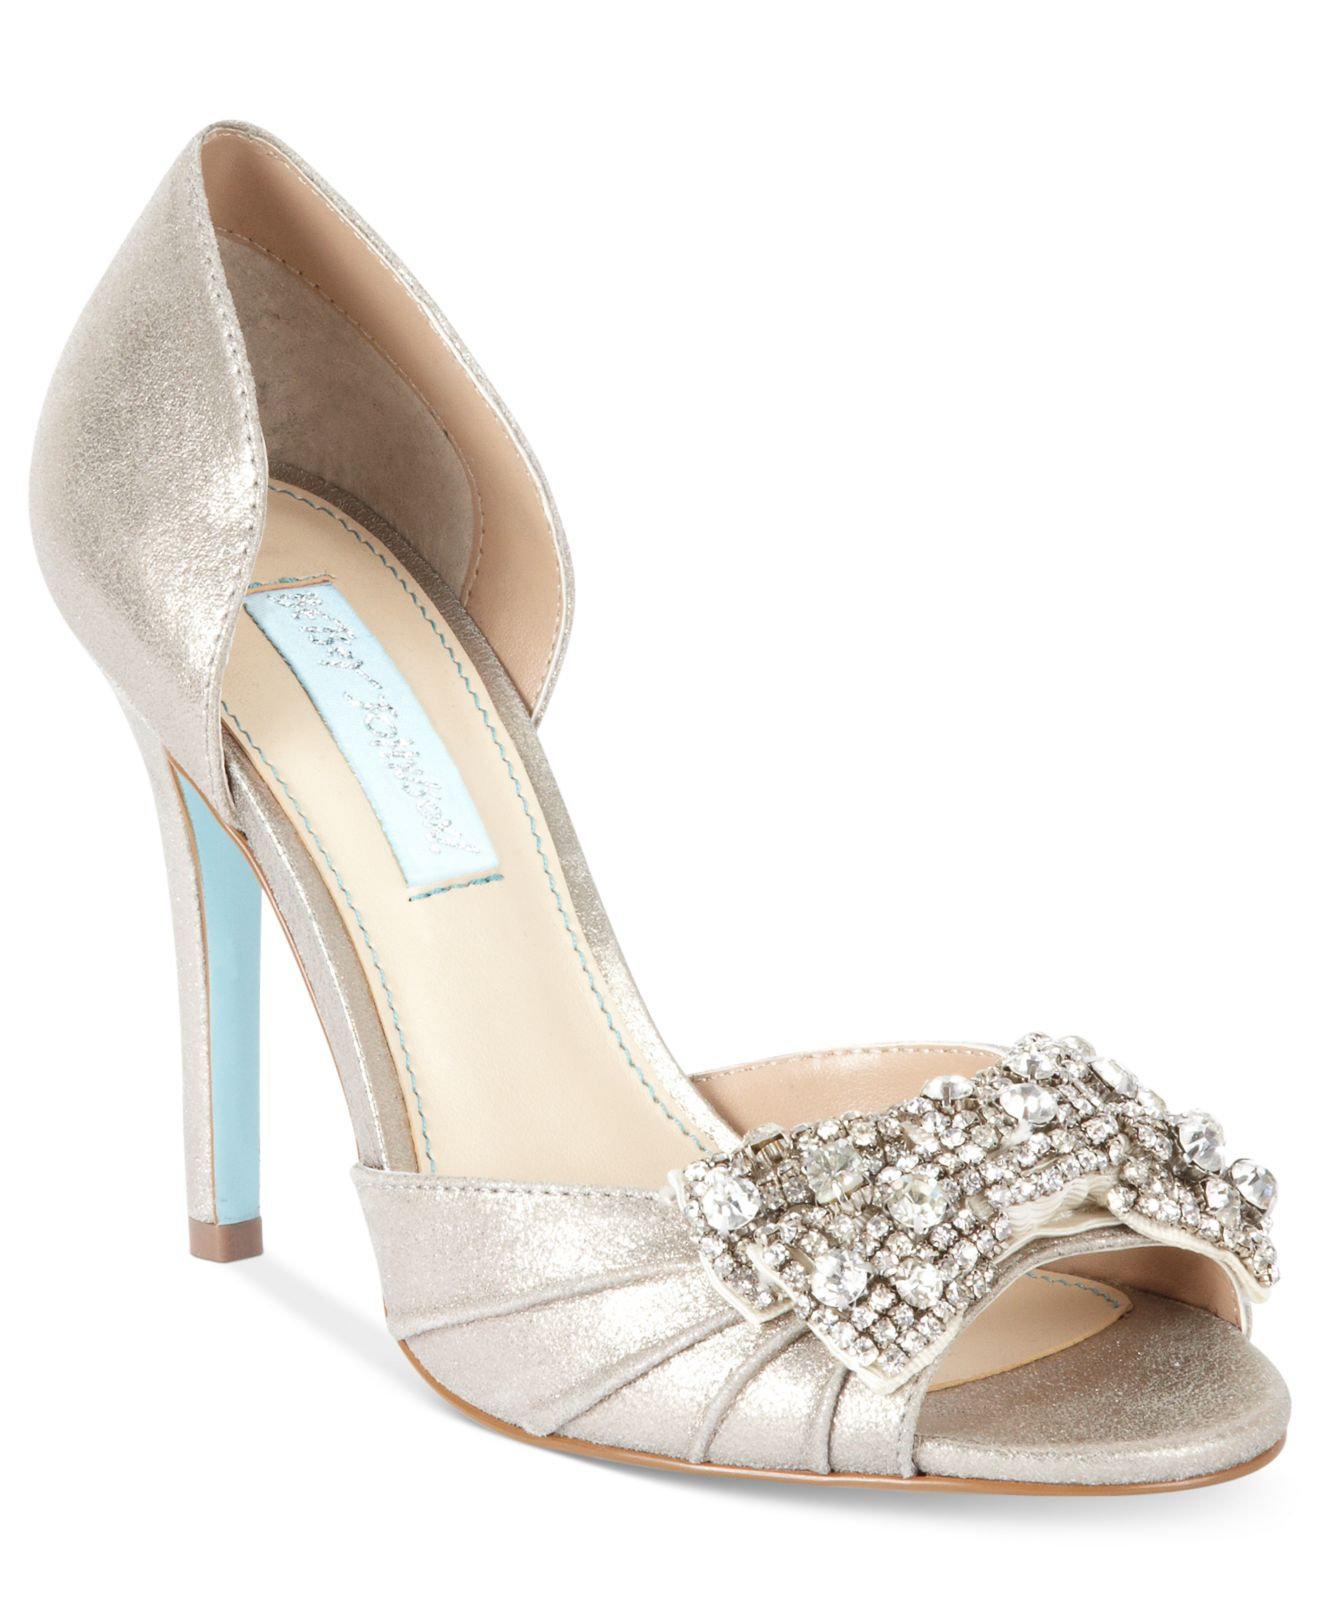 Lyst - Betsey Johnson Gown Evening Pumps in Metallic